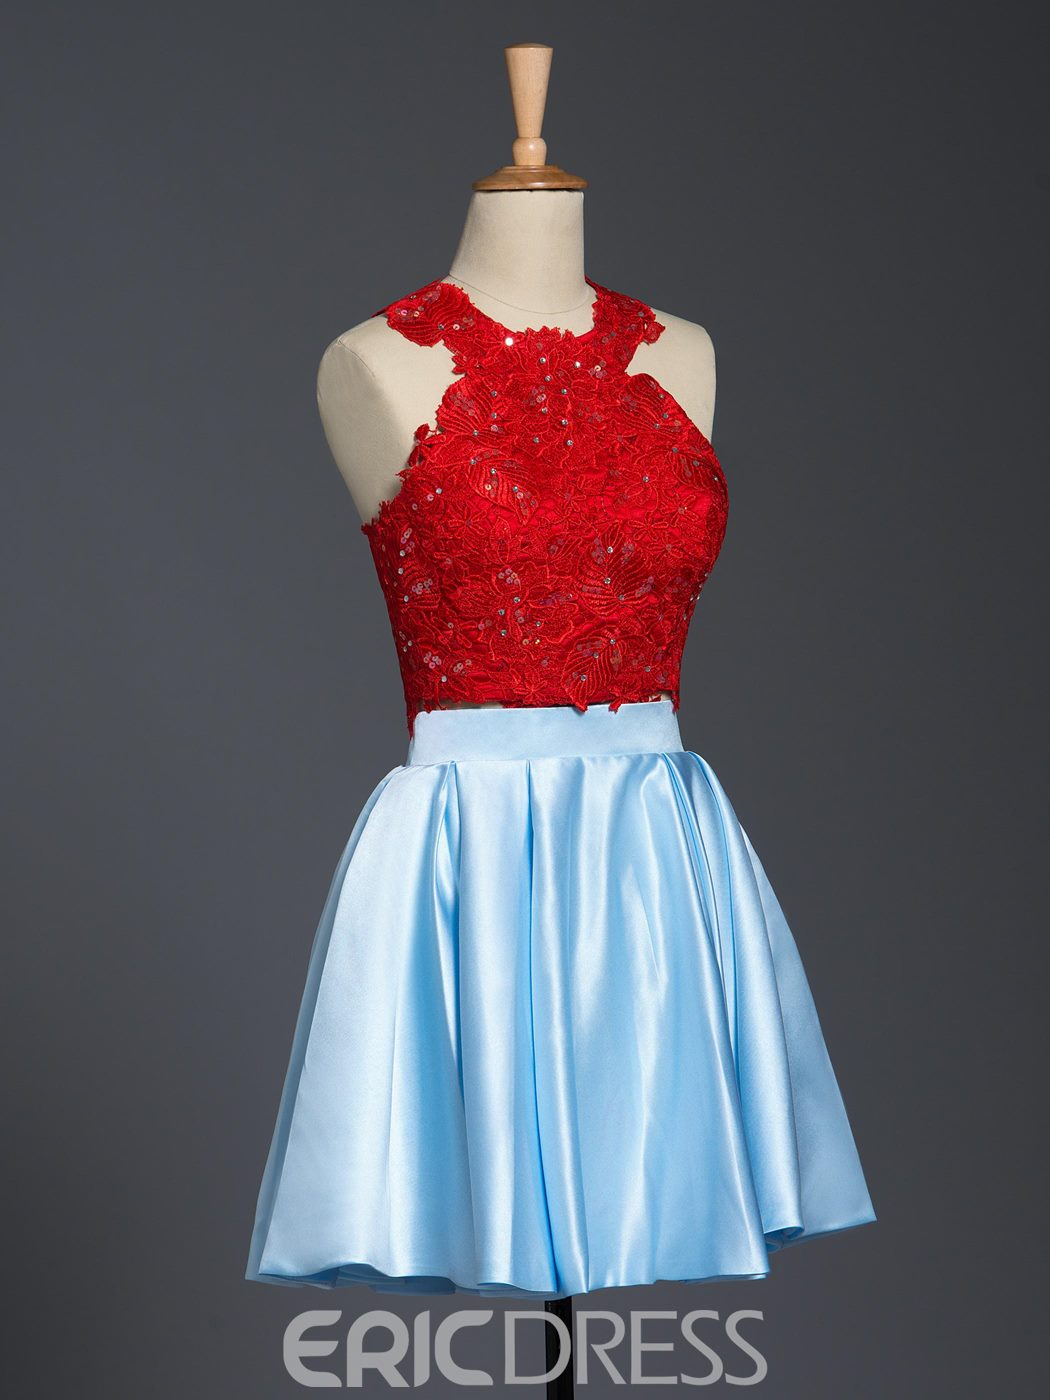 Ericdress Two-Piece Lace Sequins Homecoming Dress